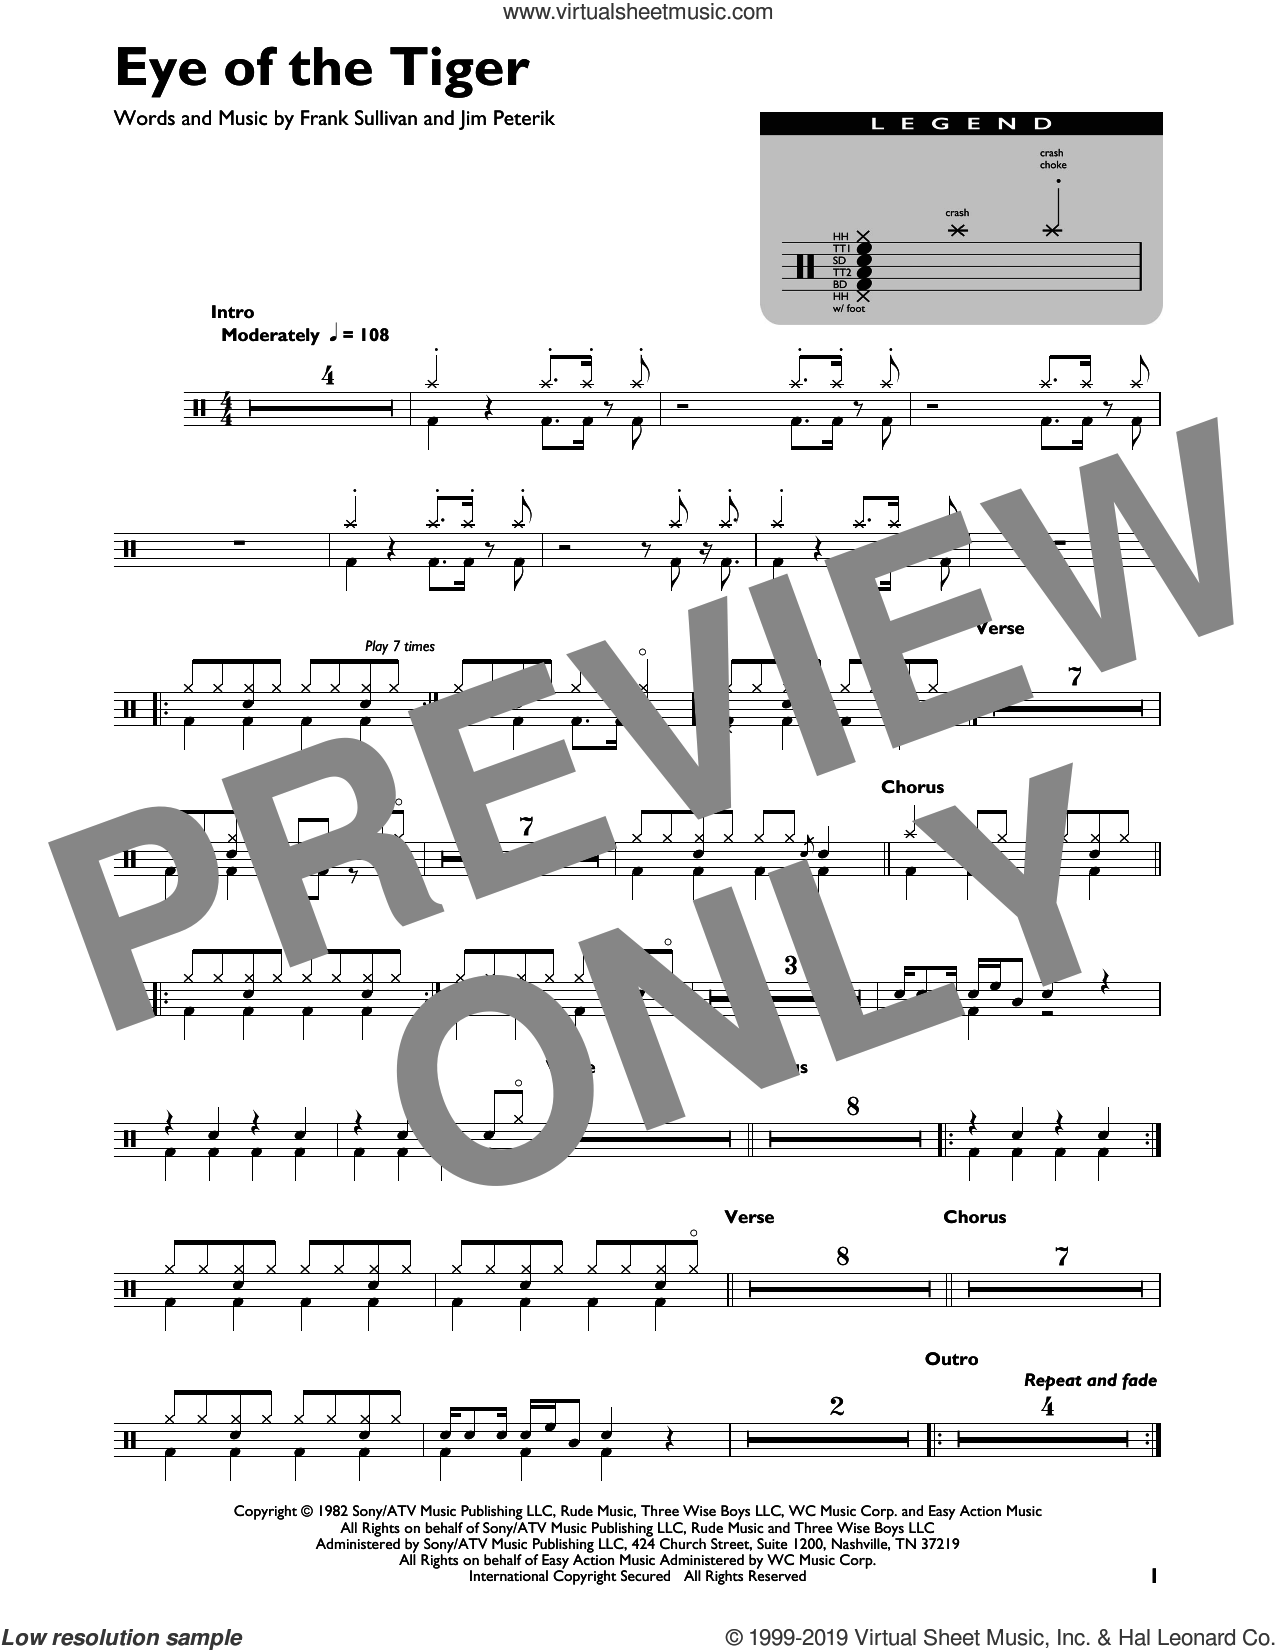 Eye Of The Tiger sheet music for drums by Survivor, Frank Sullivan and Jim Peterik, intermediate skill level